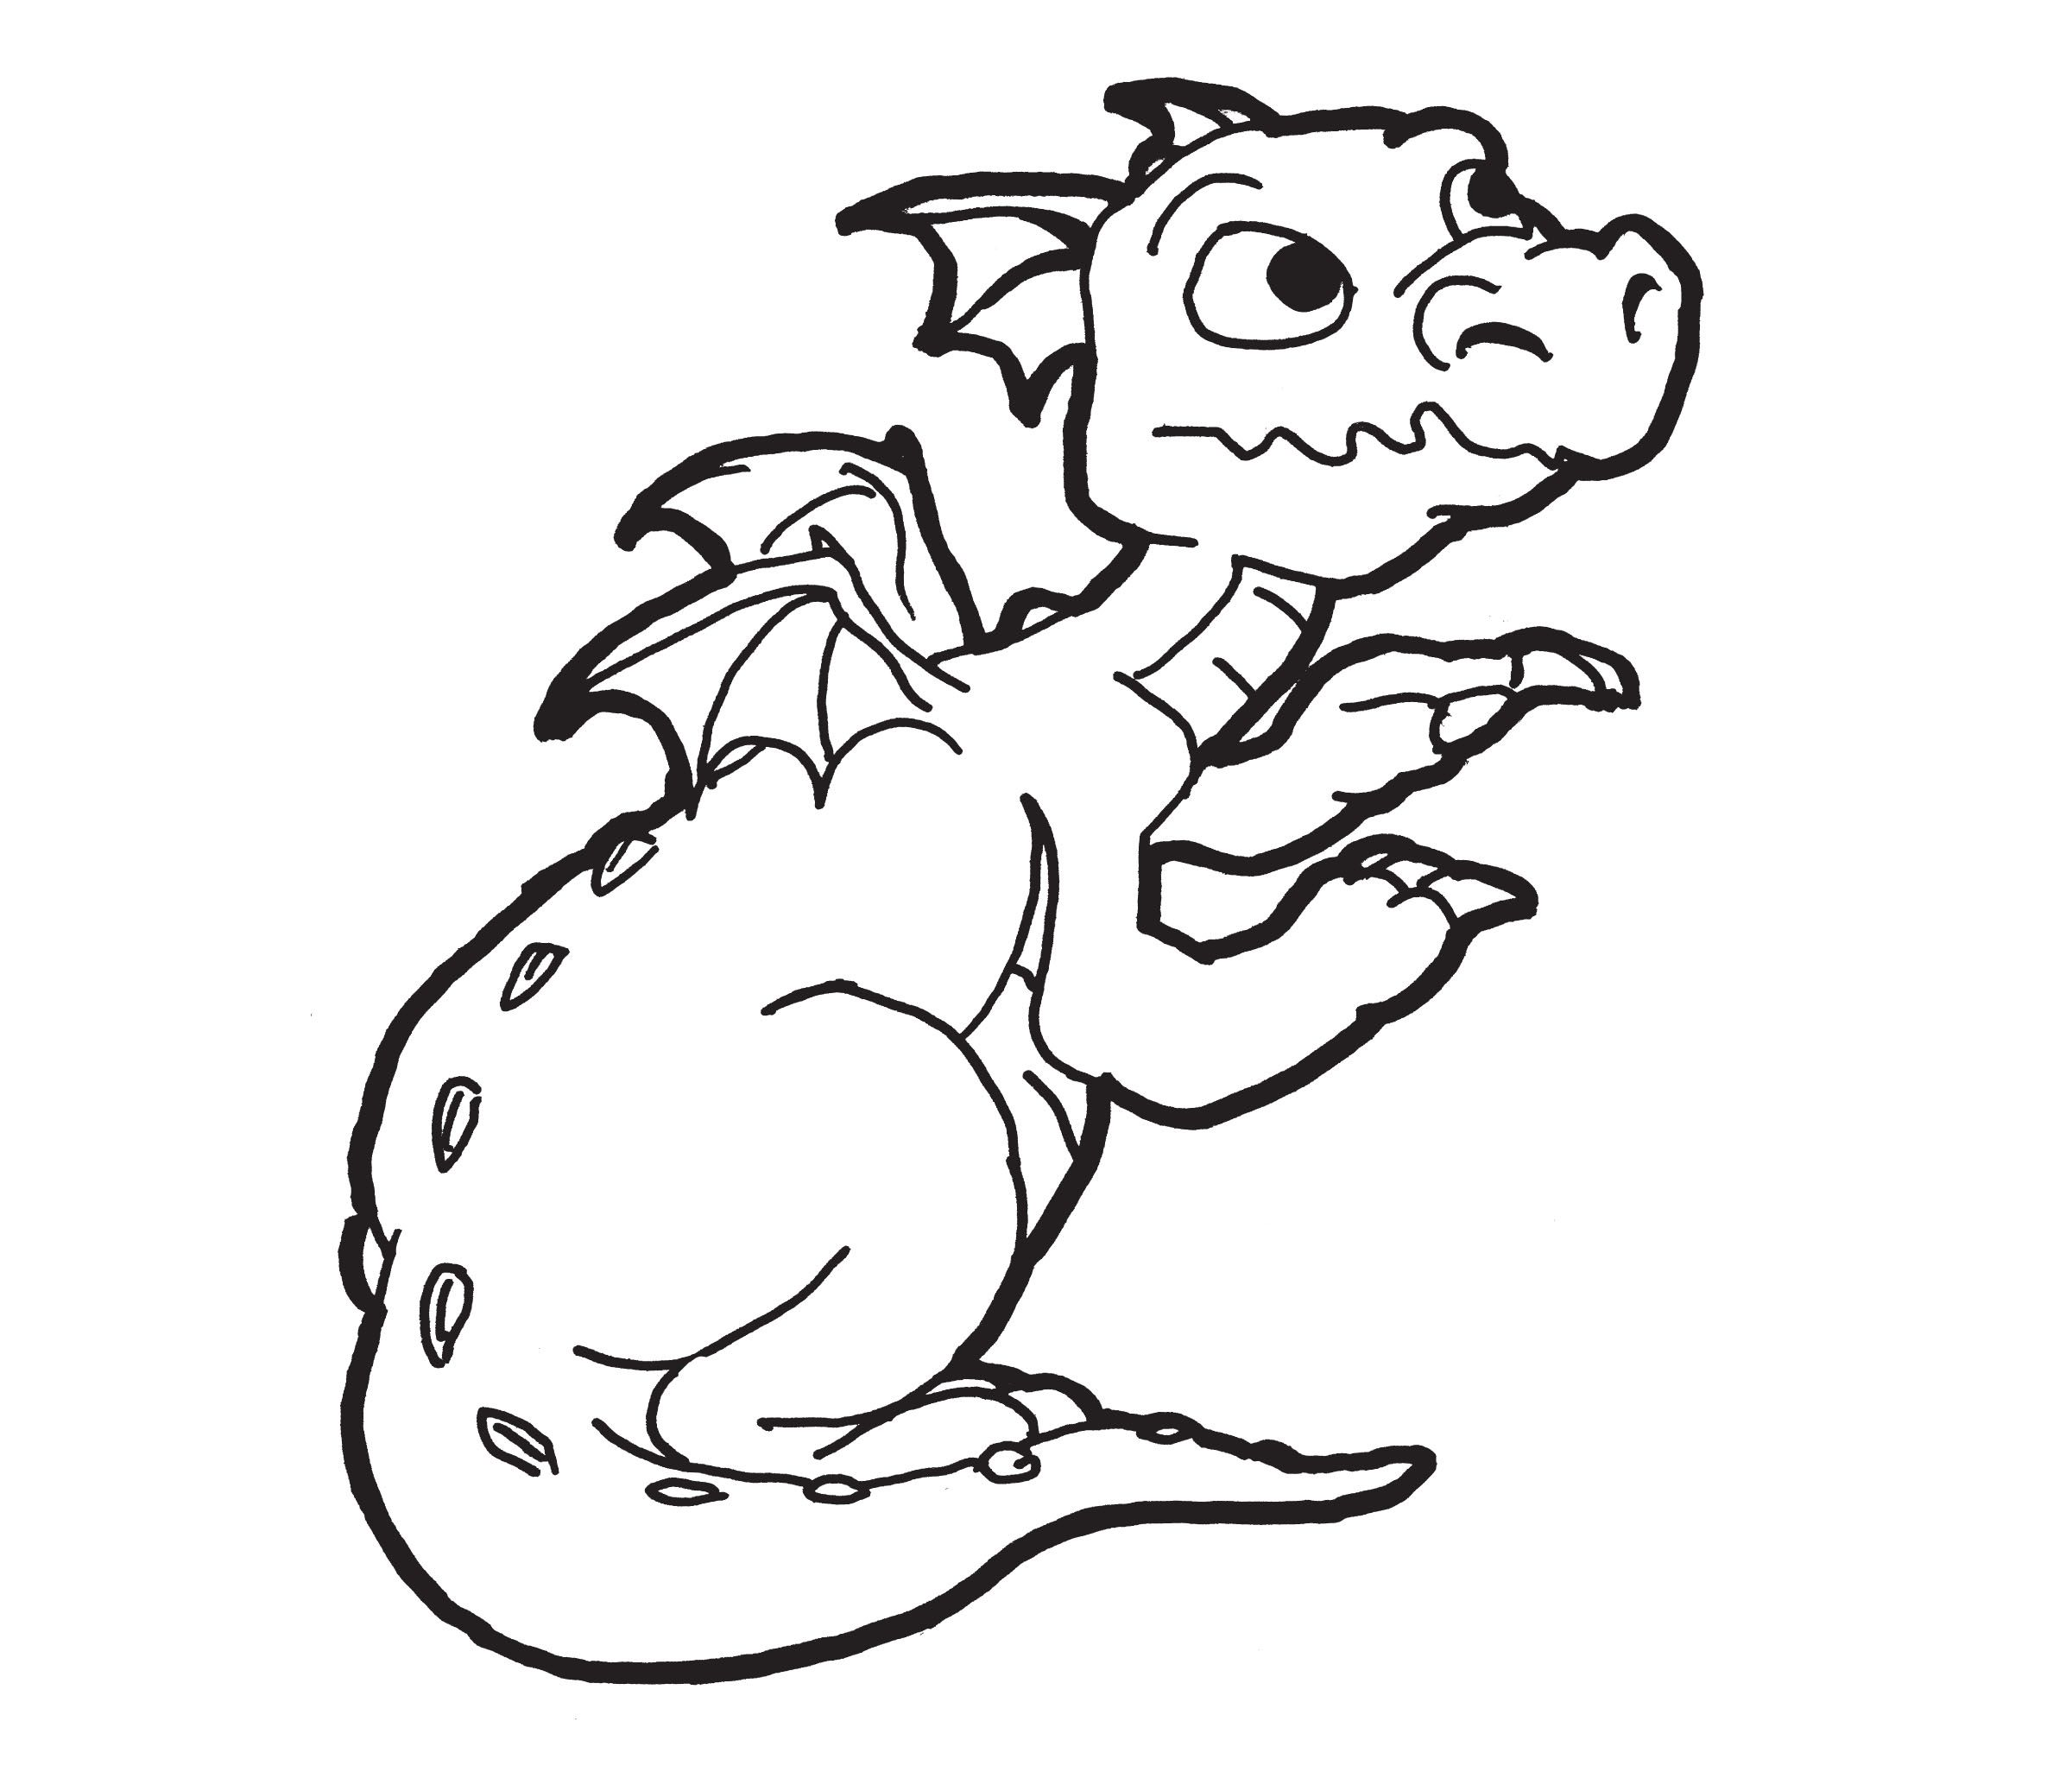 Online coloring pages for children to print - Scary Dragon Coloring Pages Free Printable Dragon Coloring Pages For Kids